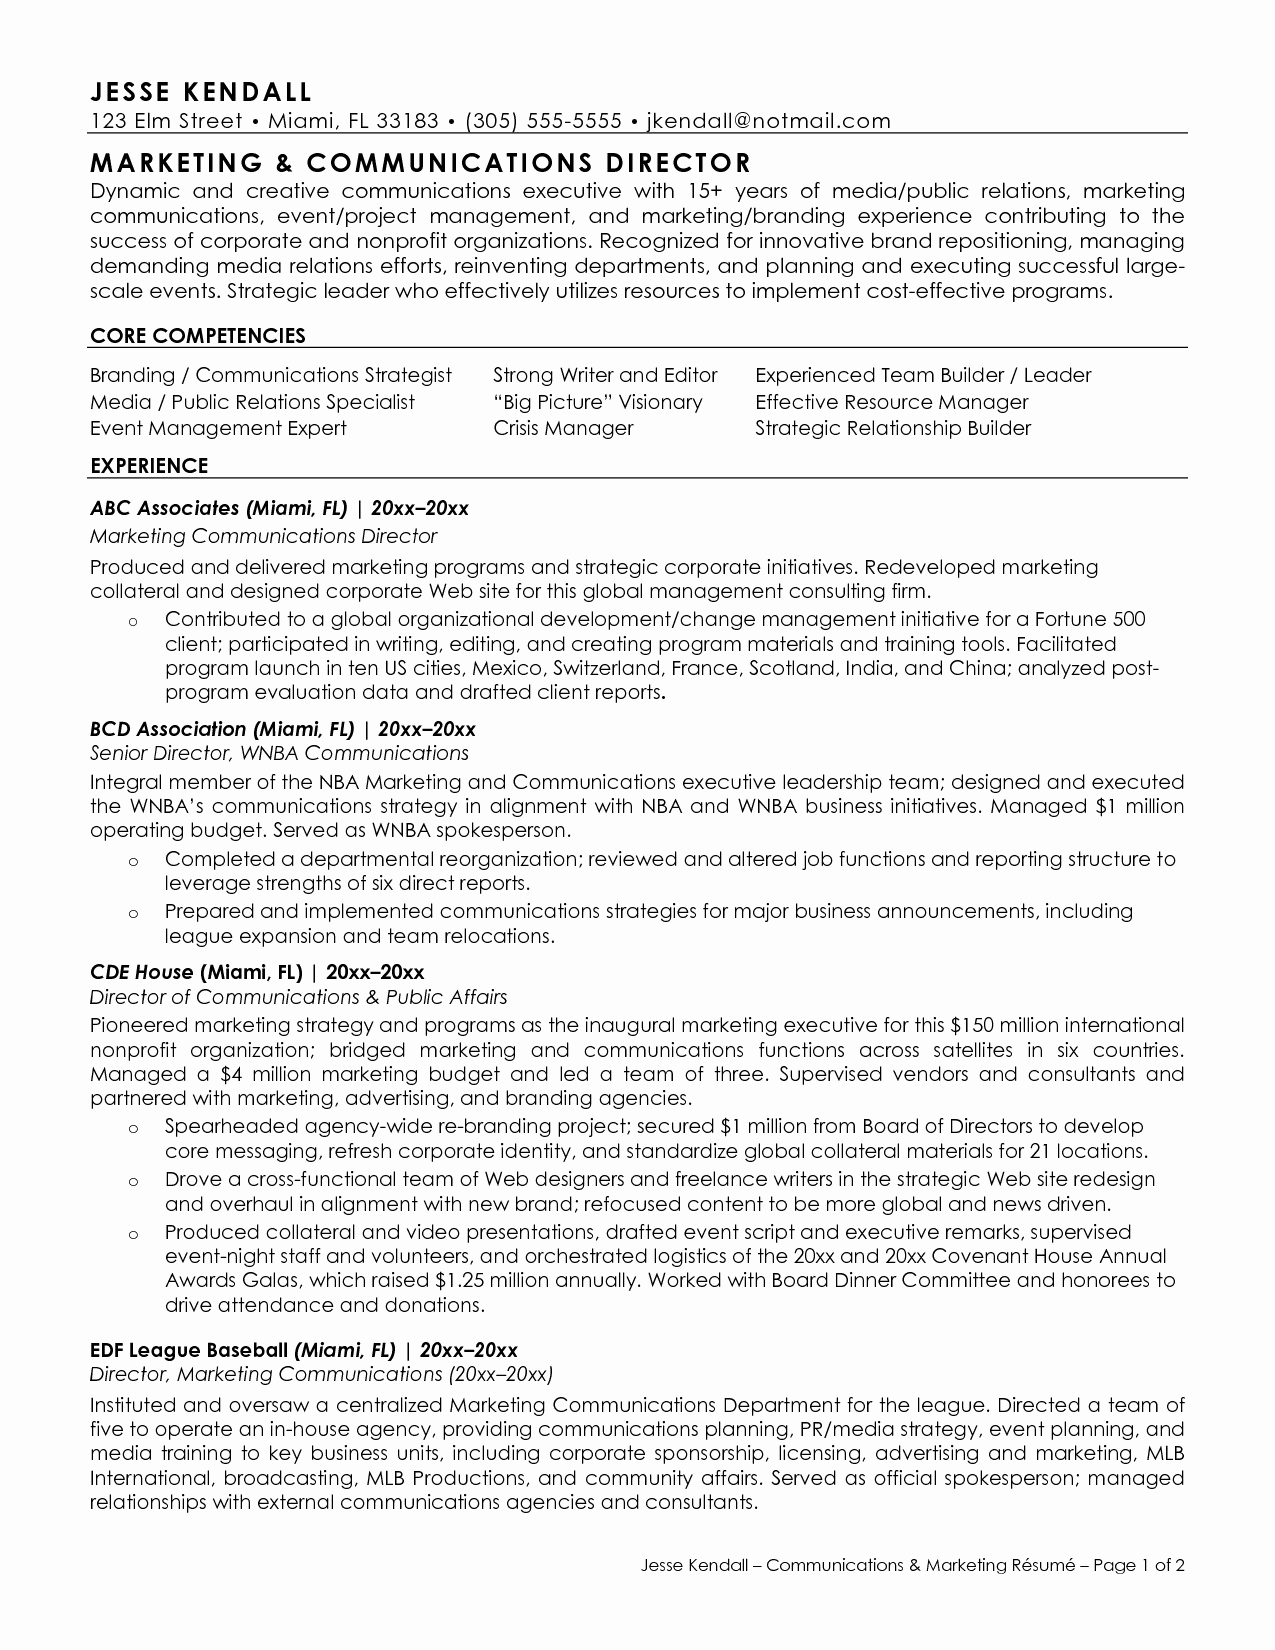 Good Objective For Resume Resume Examples For Creative Director New Collection Good Objective Resume New Best Sample College Application Resume Of Resume Examples For Creative Director good objective for resume wikiresume.com